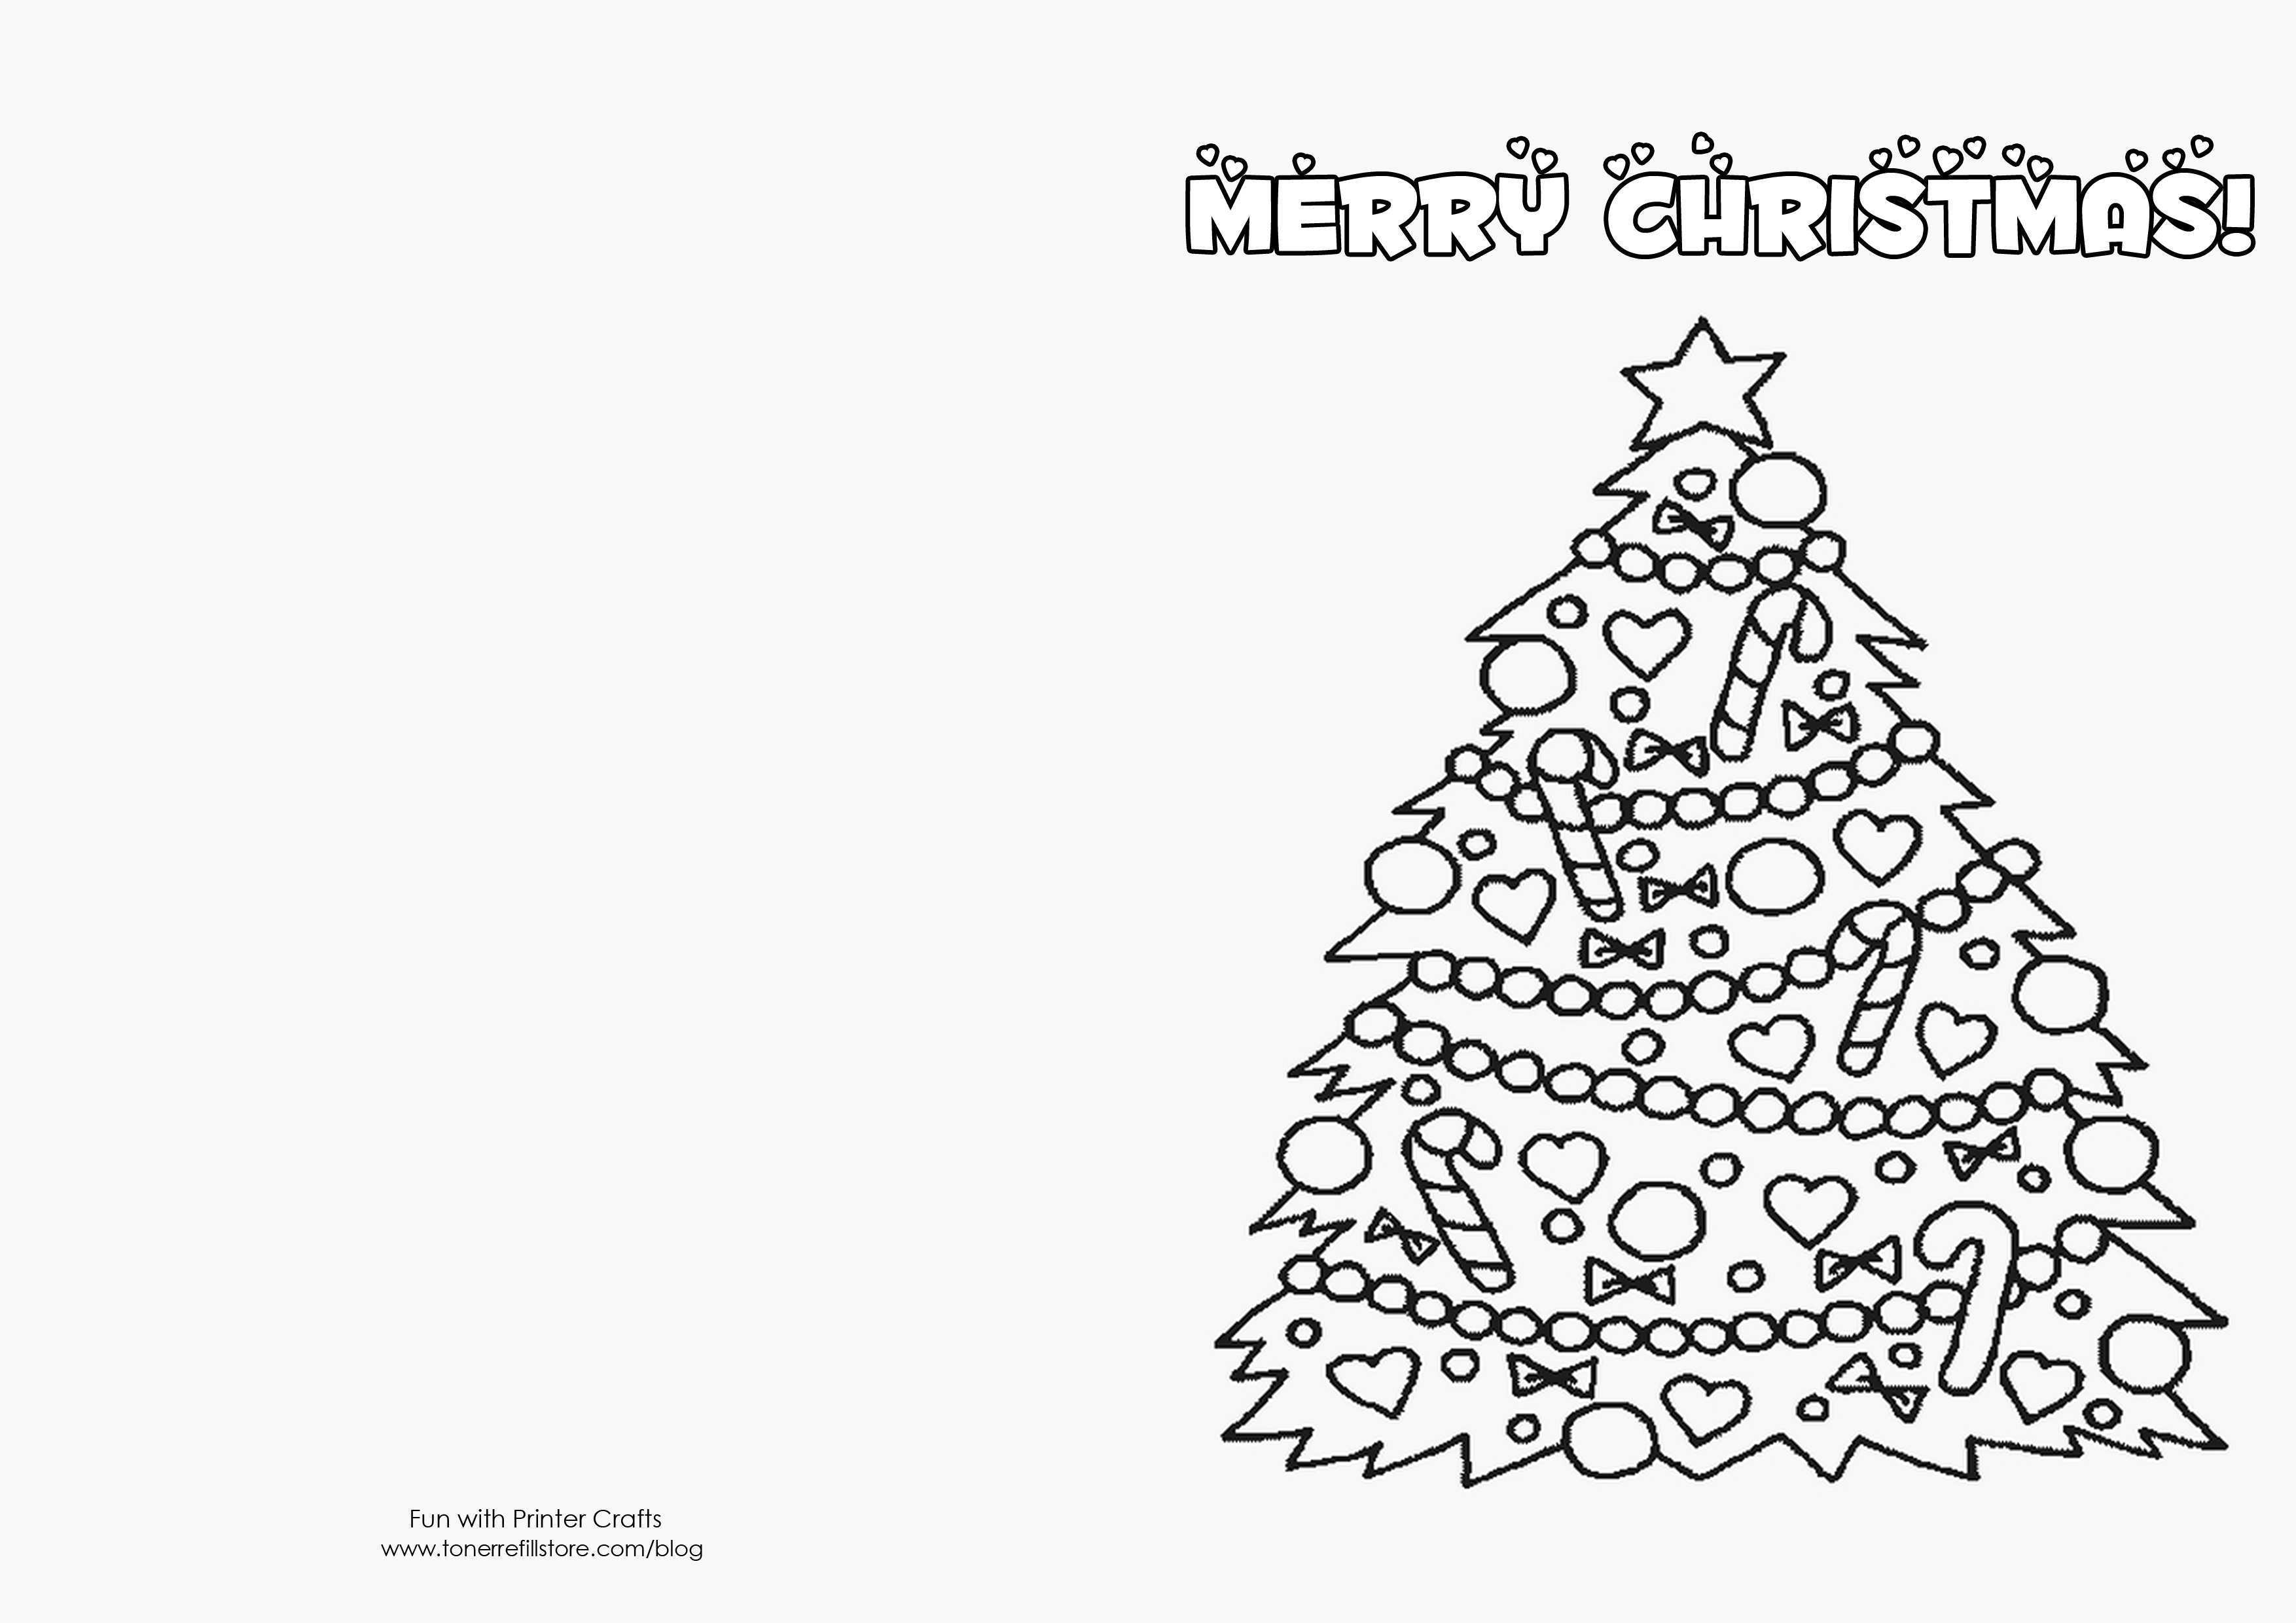 65 Blank Christmas Card Template Black And White PSD File for Christmas Card Template Black And White